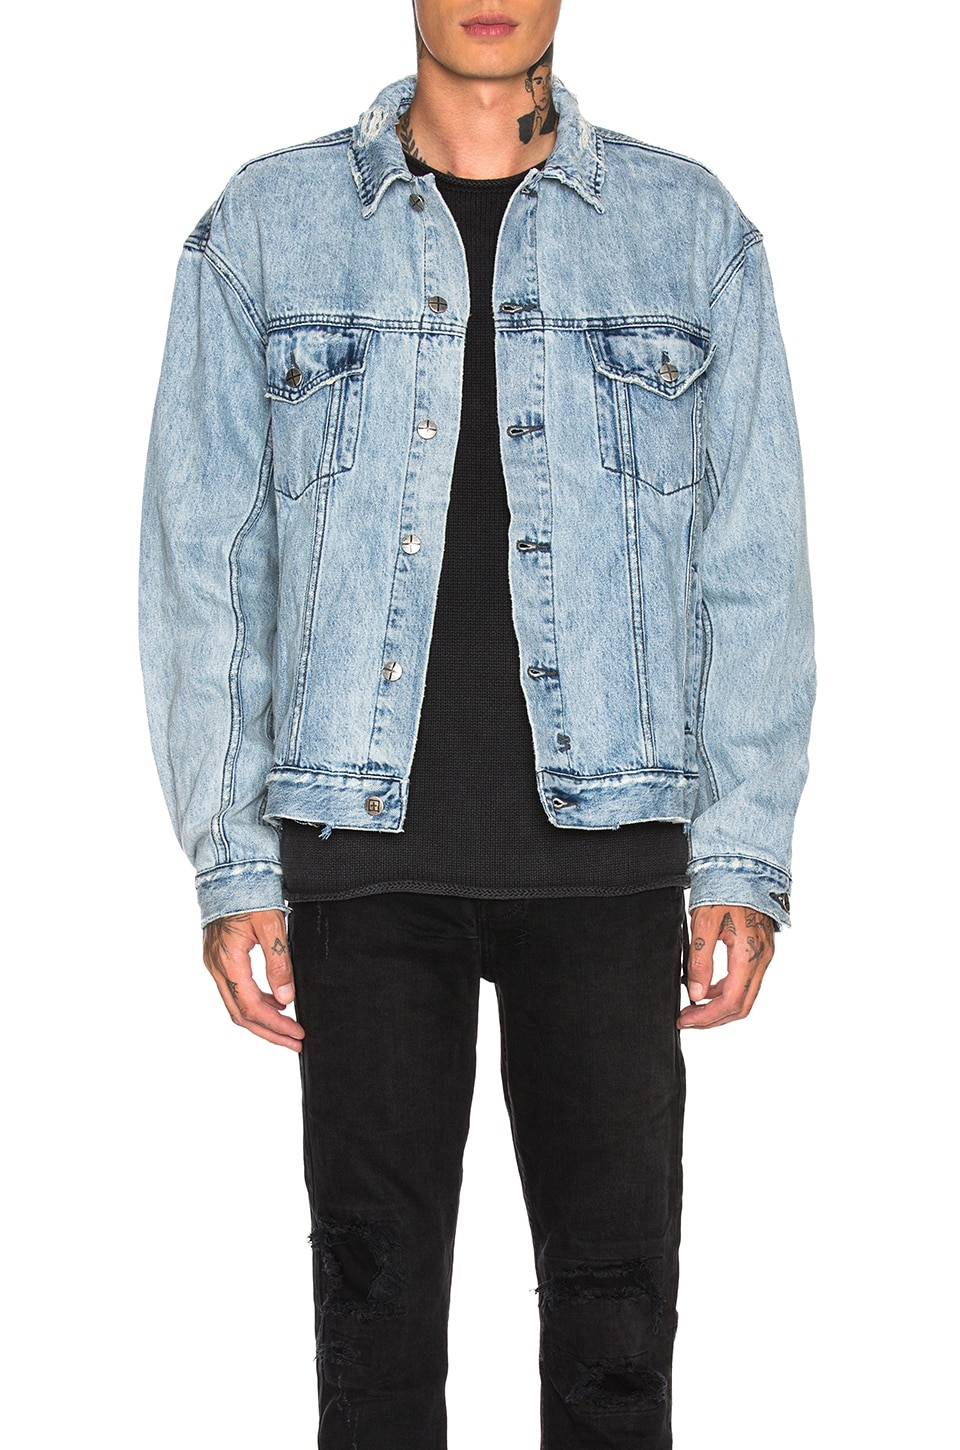 Ksubi Oh G Acid Trip Jacket in Denim